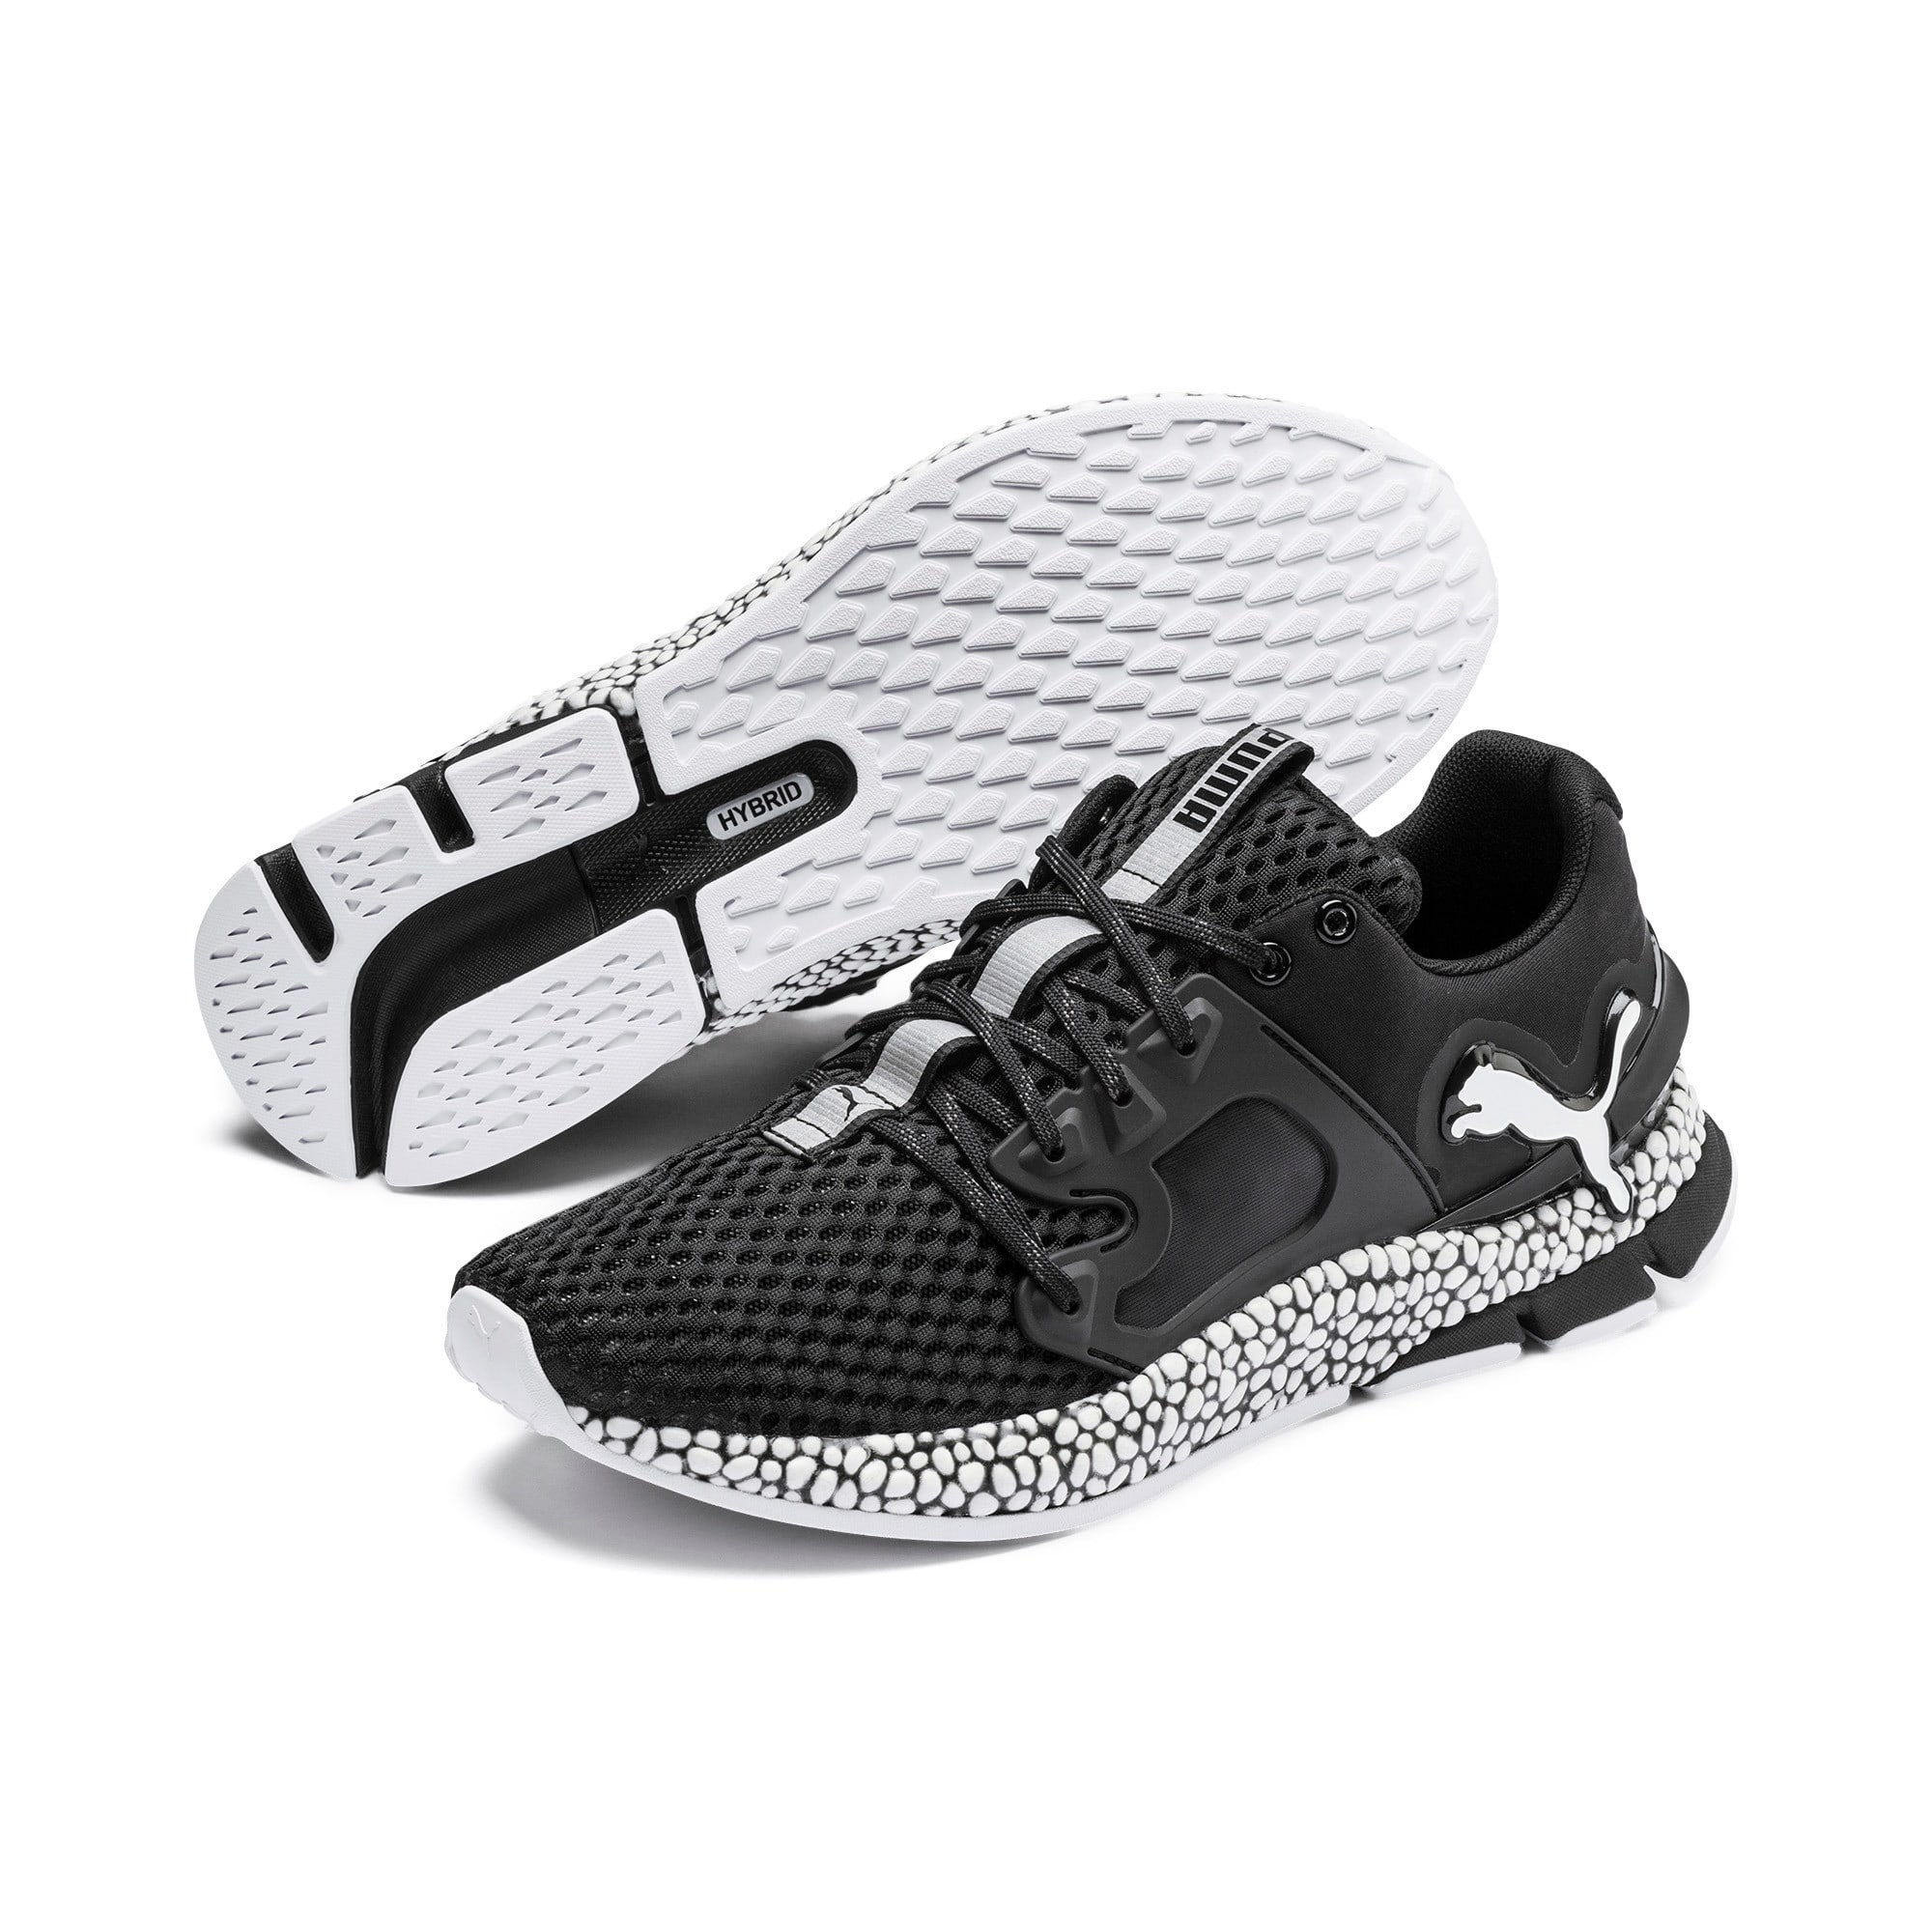 Thumbnail 3 of HYBRID Sky Men's Running Shoes, Puma Black-Puma White, medium